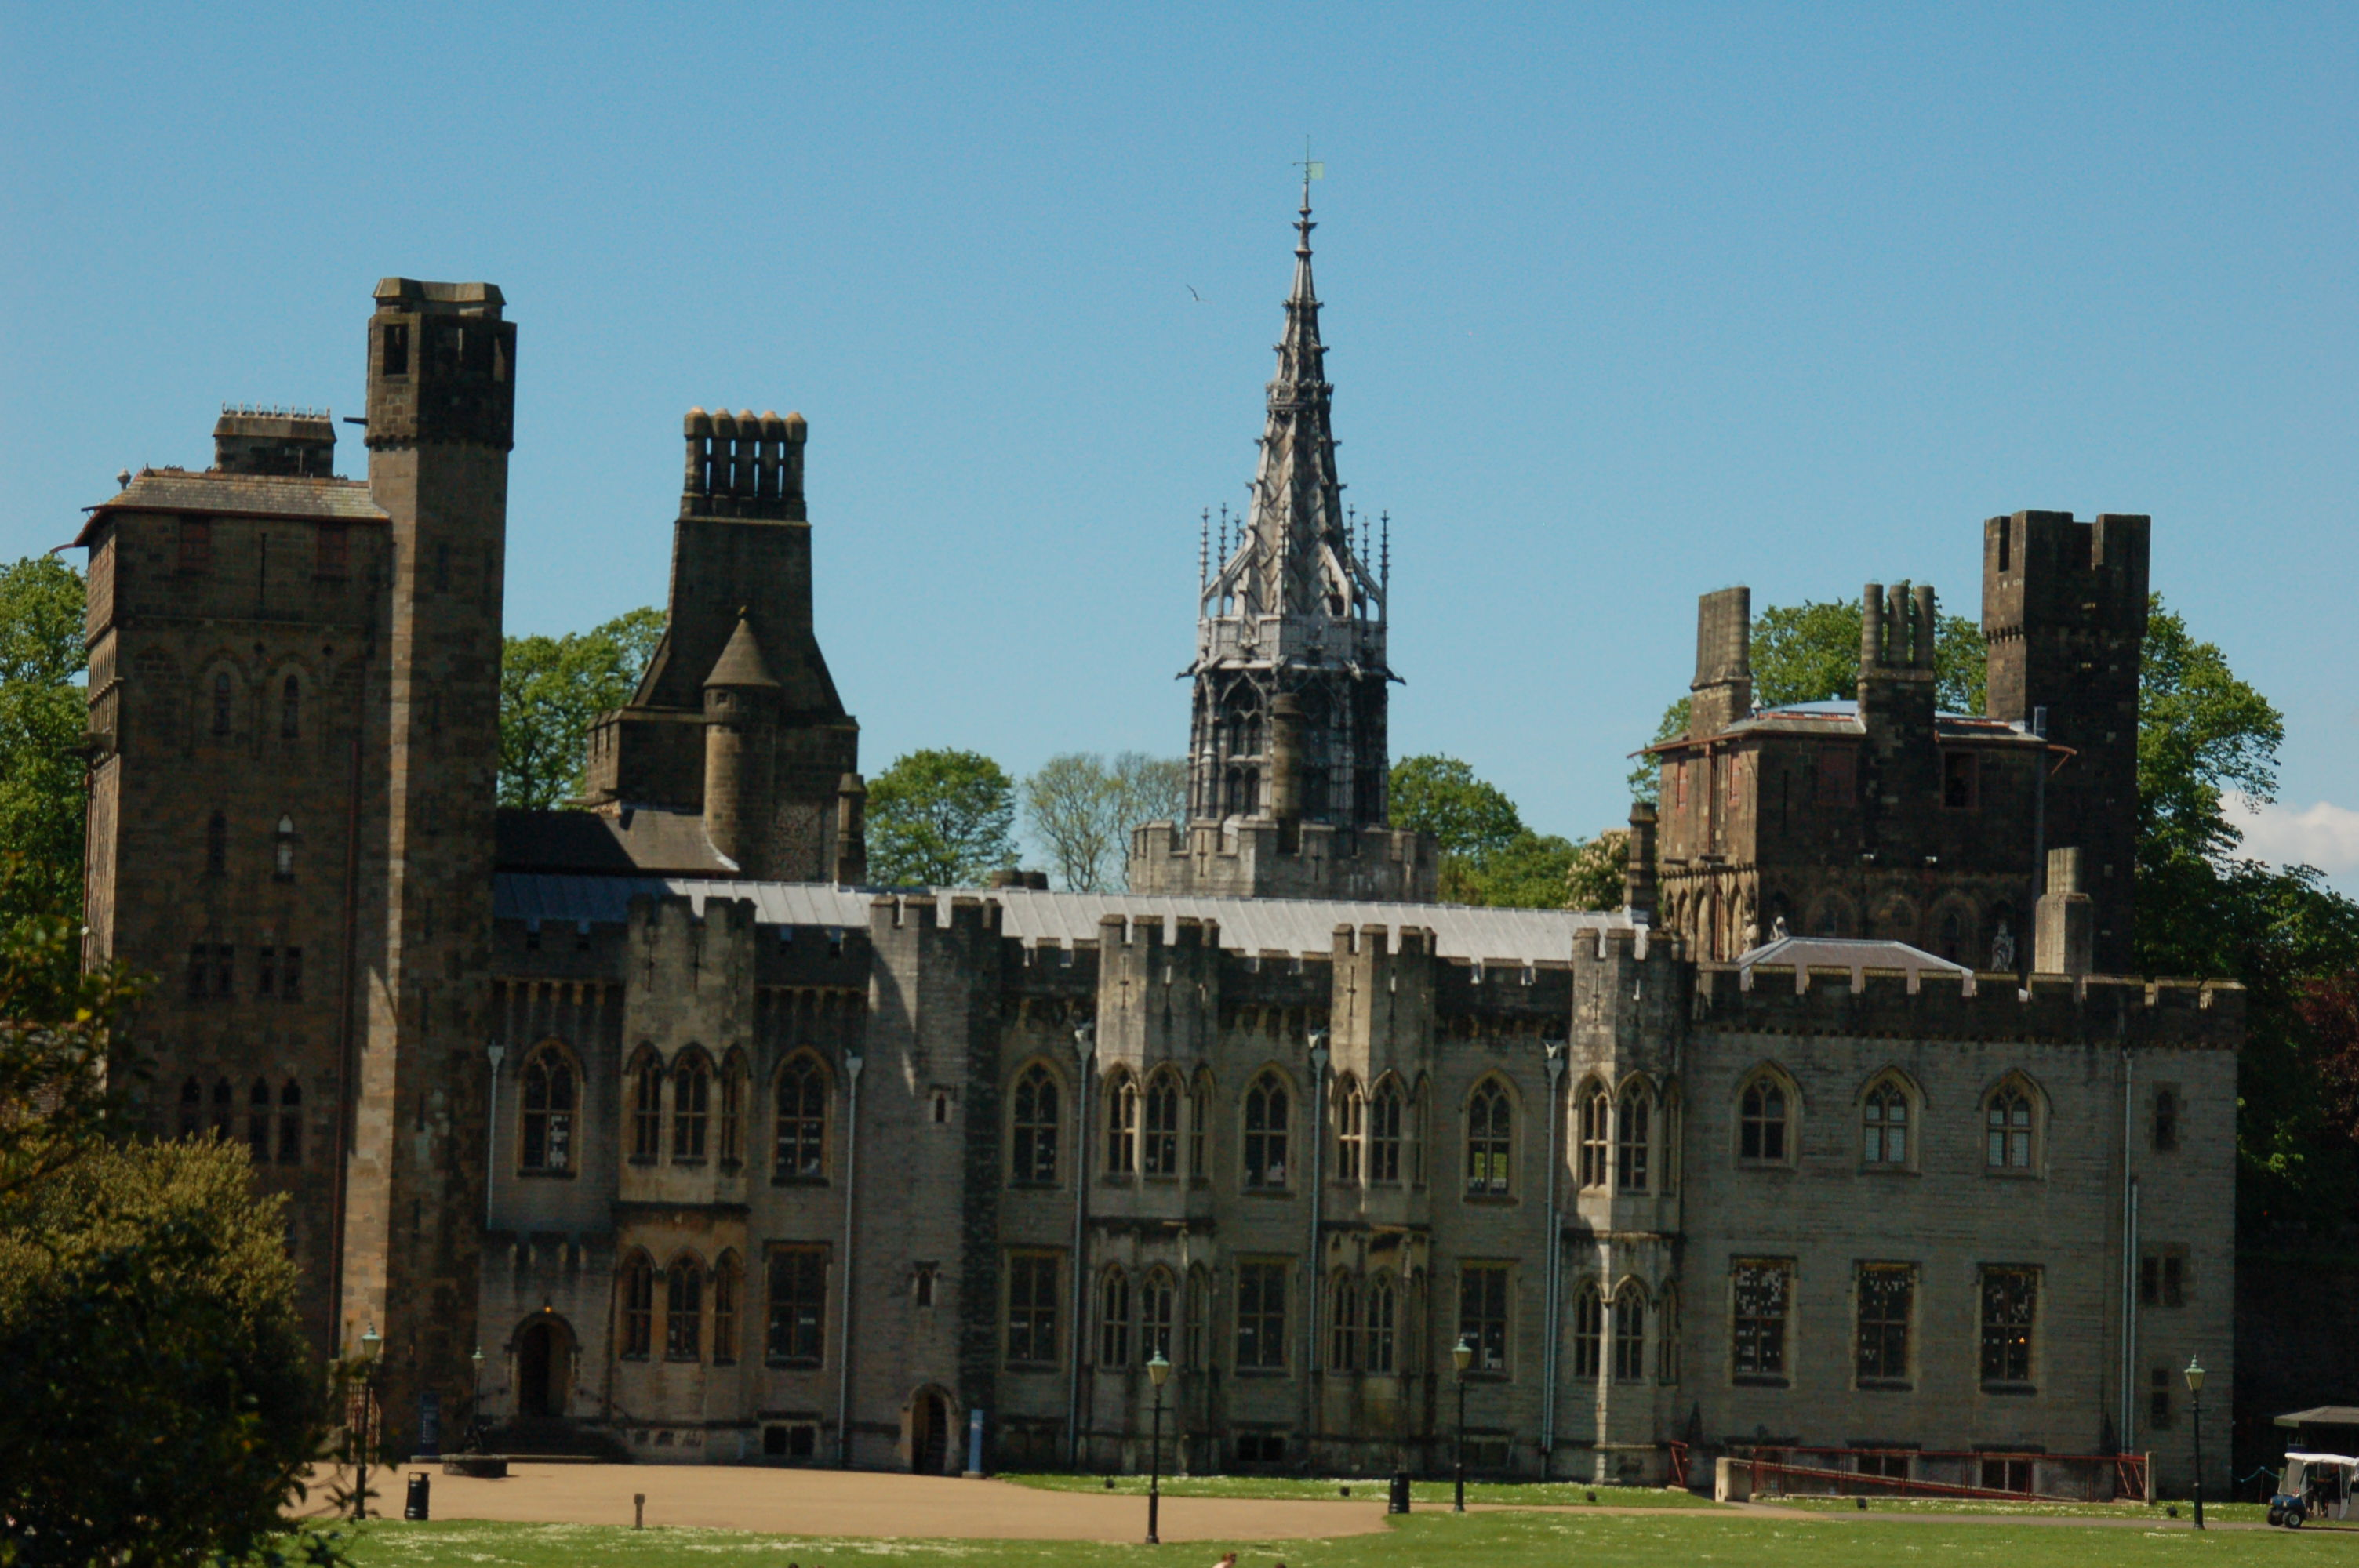 The 18th Century Mansion of Cardiff Castle